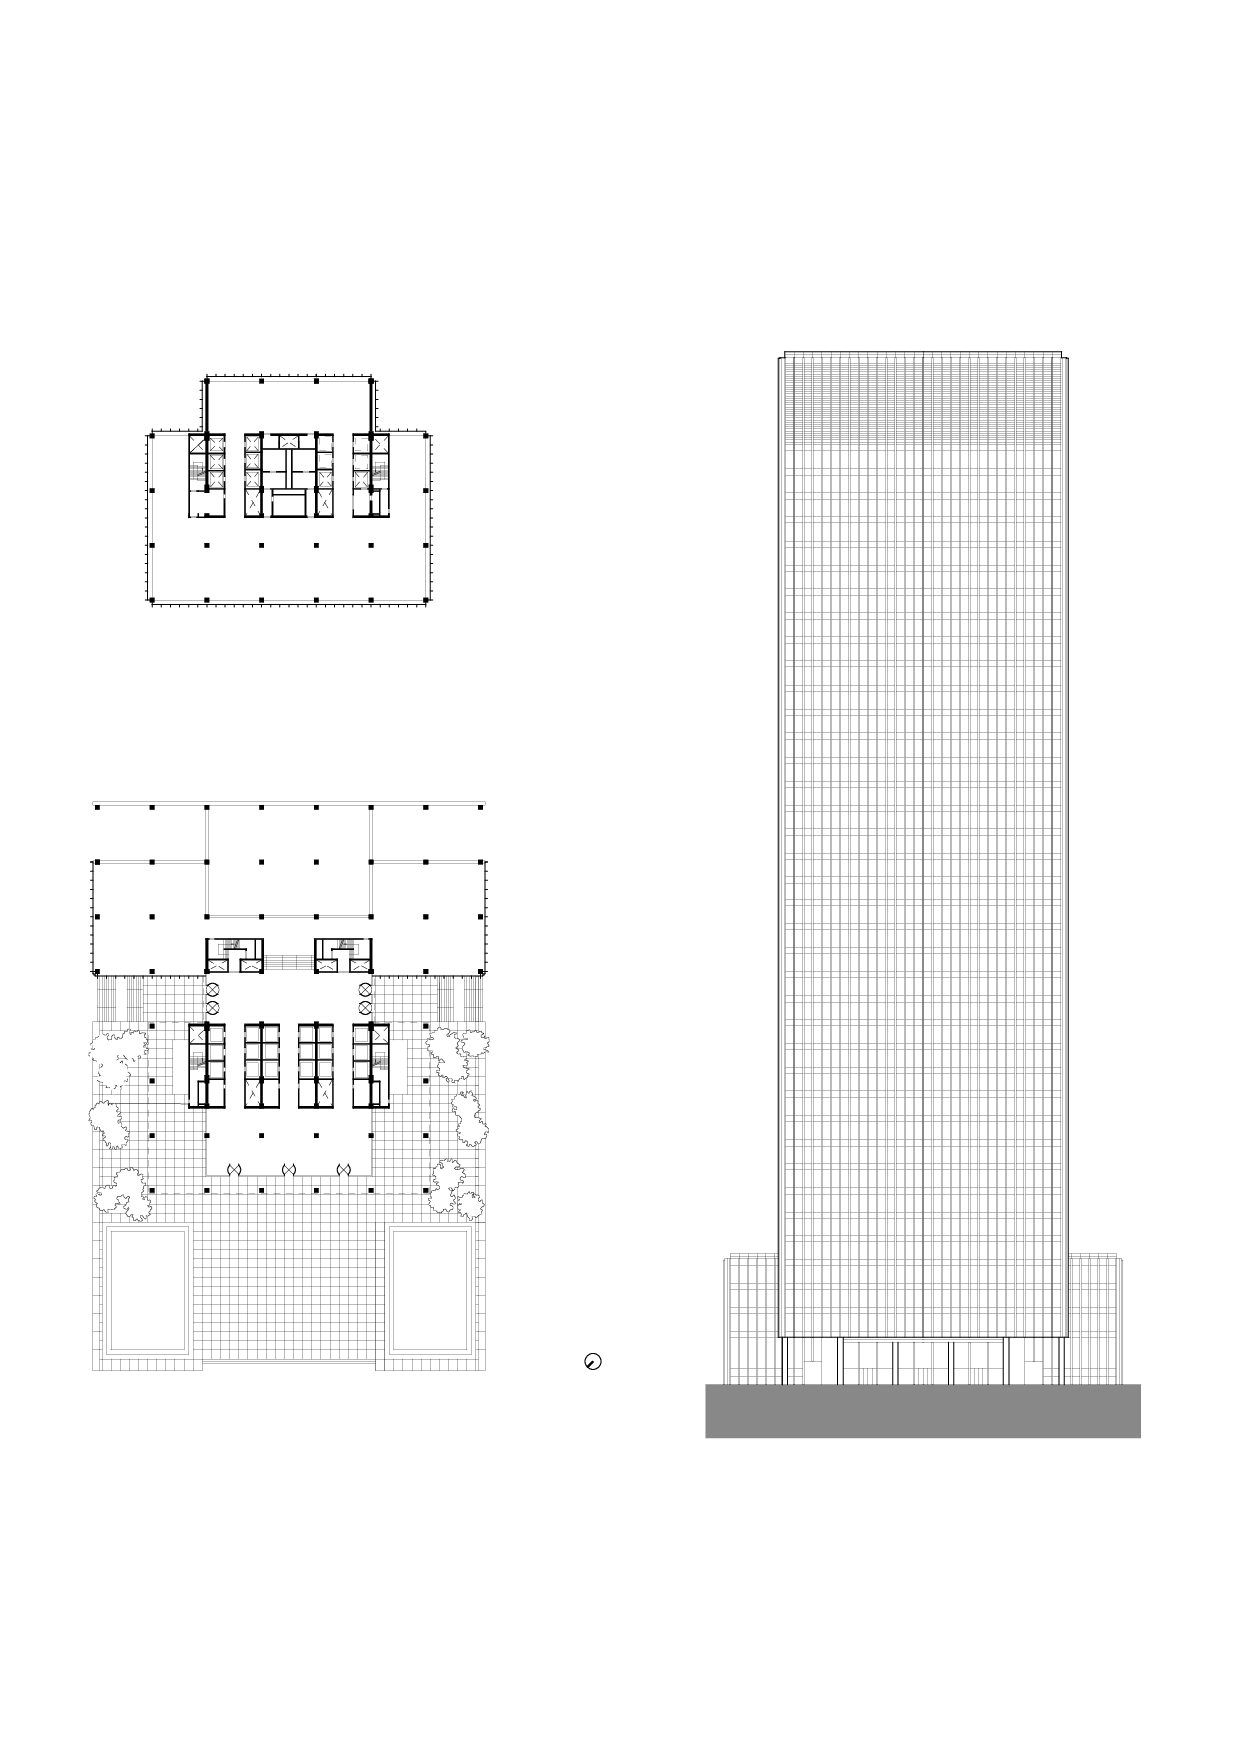 Mies Van Der Rohe With Philip Johnson Seagram Building Plan Of A Typical Floor Elevation